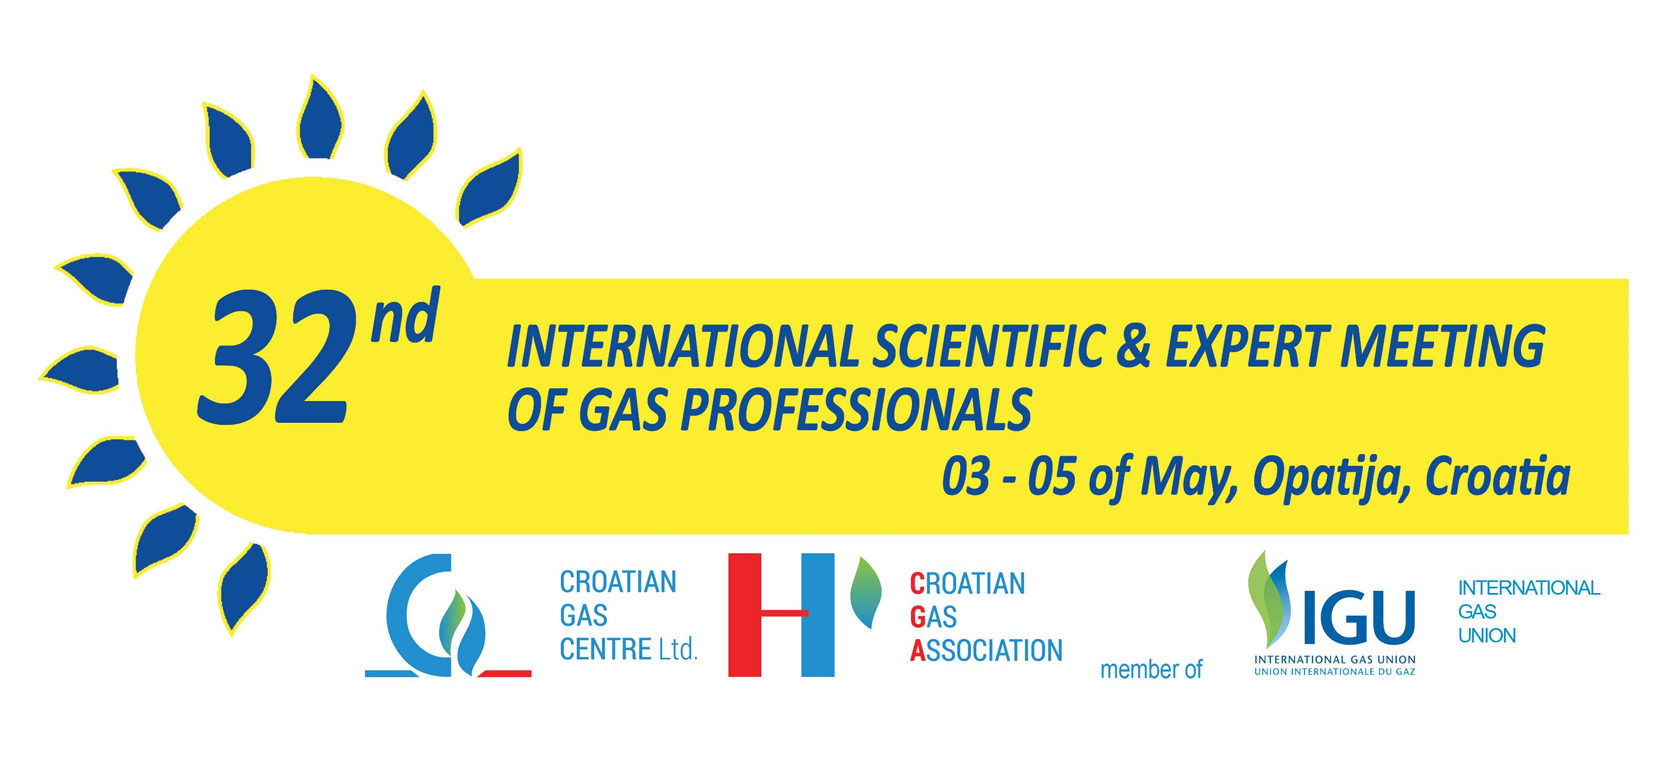 Gas Professionals Meeting: Call for Papers